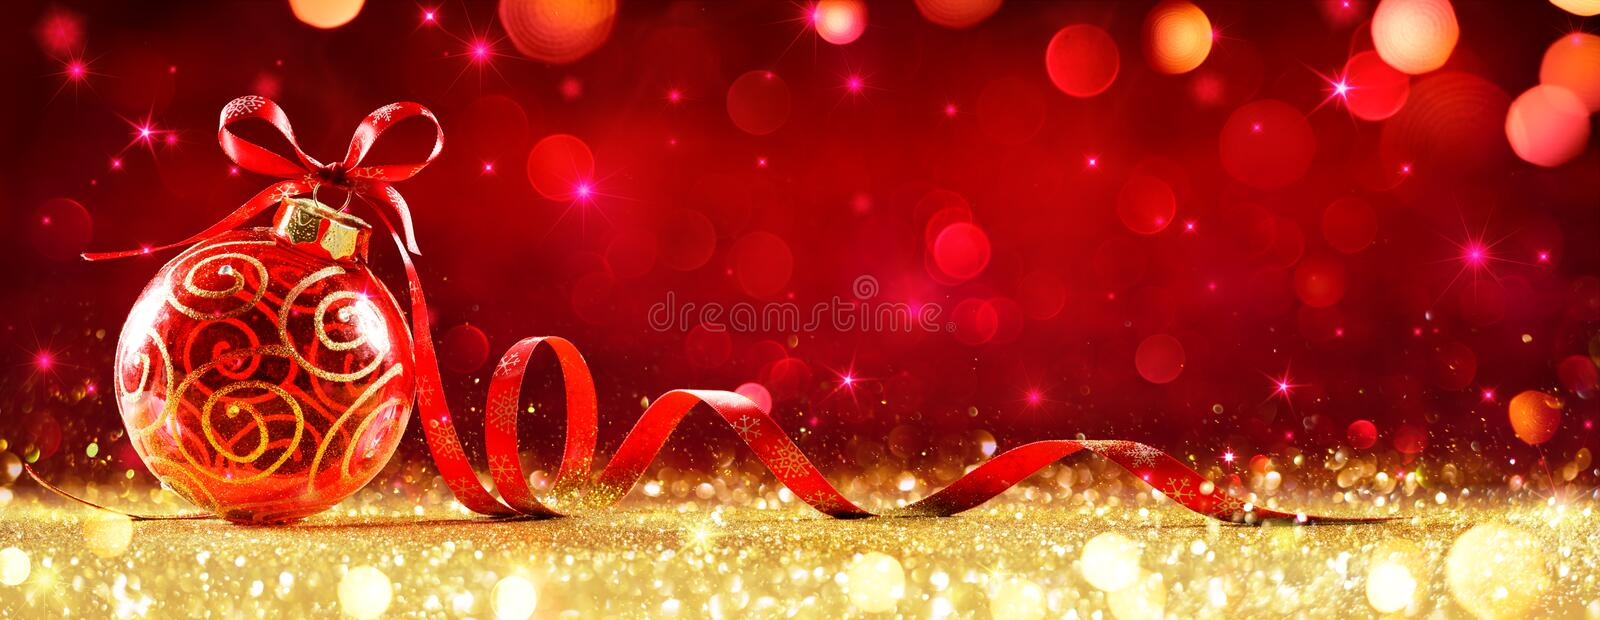 Red Christmas Sphere With Bow royalty free stock photos